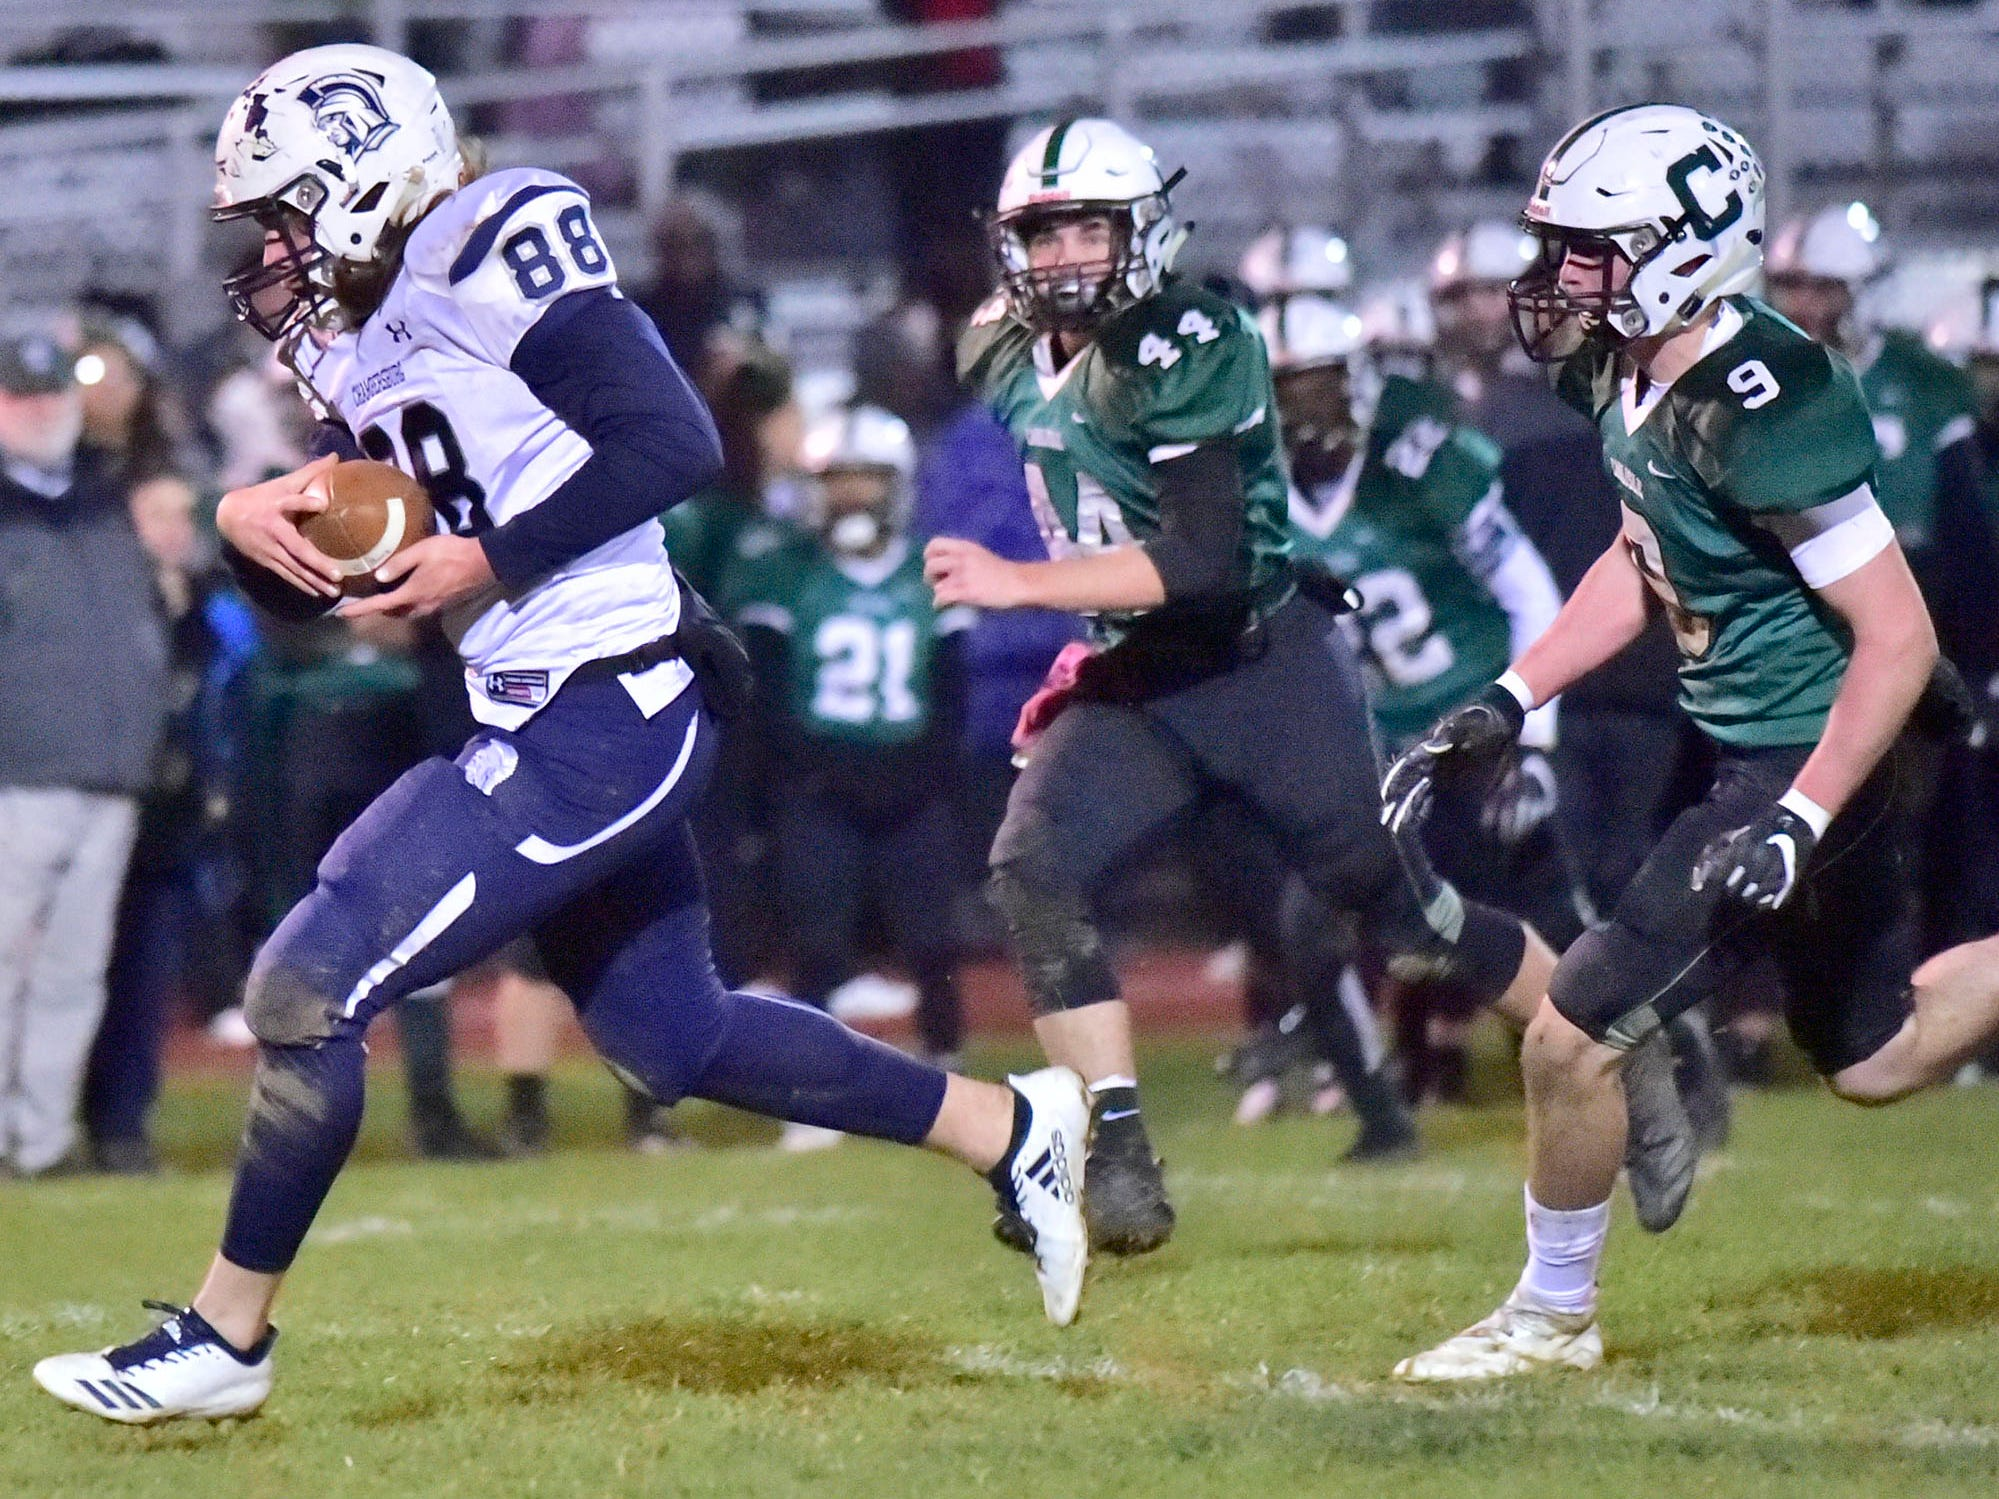 Chambersburg's Garner Funk (88) takes off for a long run after completing a pass during the 26-20 victory over Carlisle on Friday, October 26, 2018.